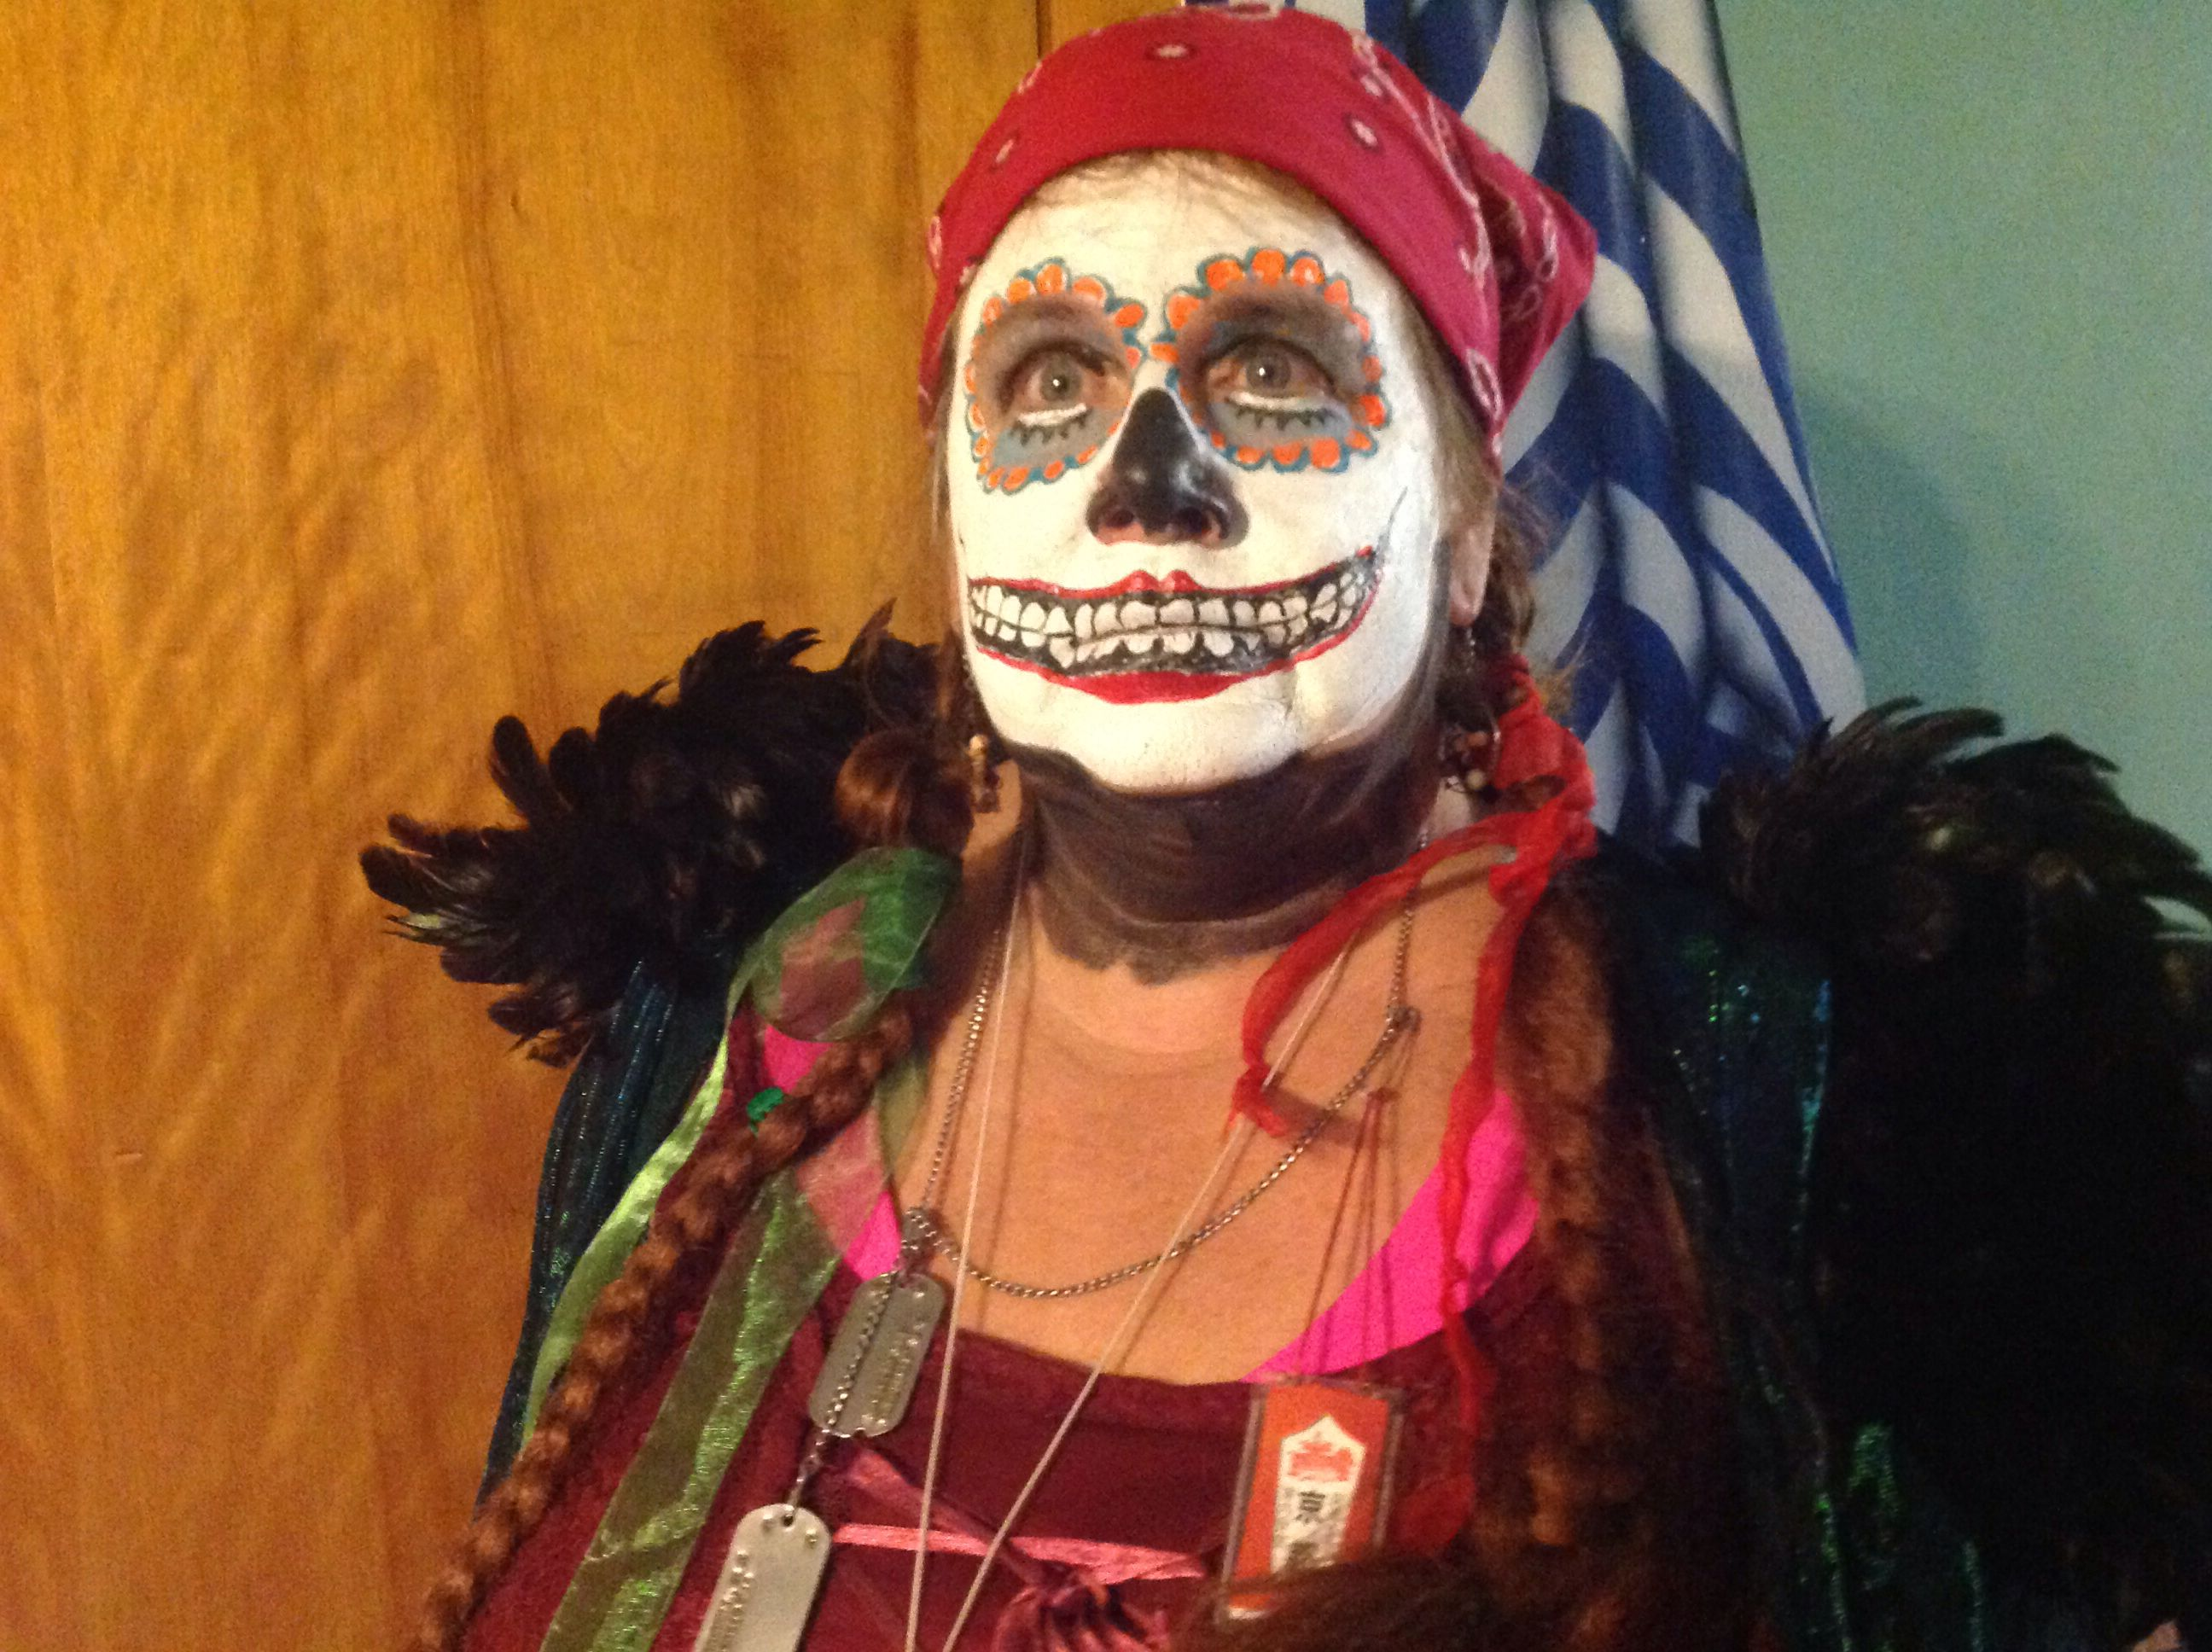 Madame Katdazzle, tarot card reader, Brinton Lodge haunted house, 1808 W. Schuylkill Rd, Douglassville, pa